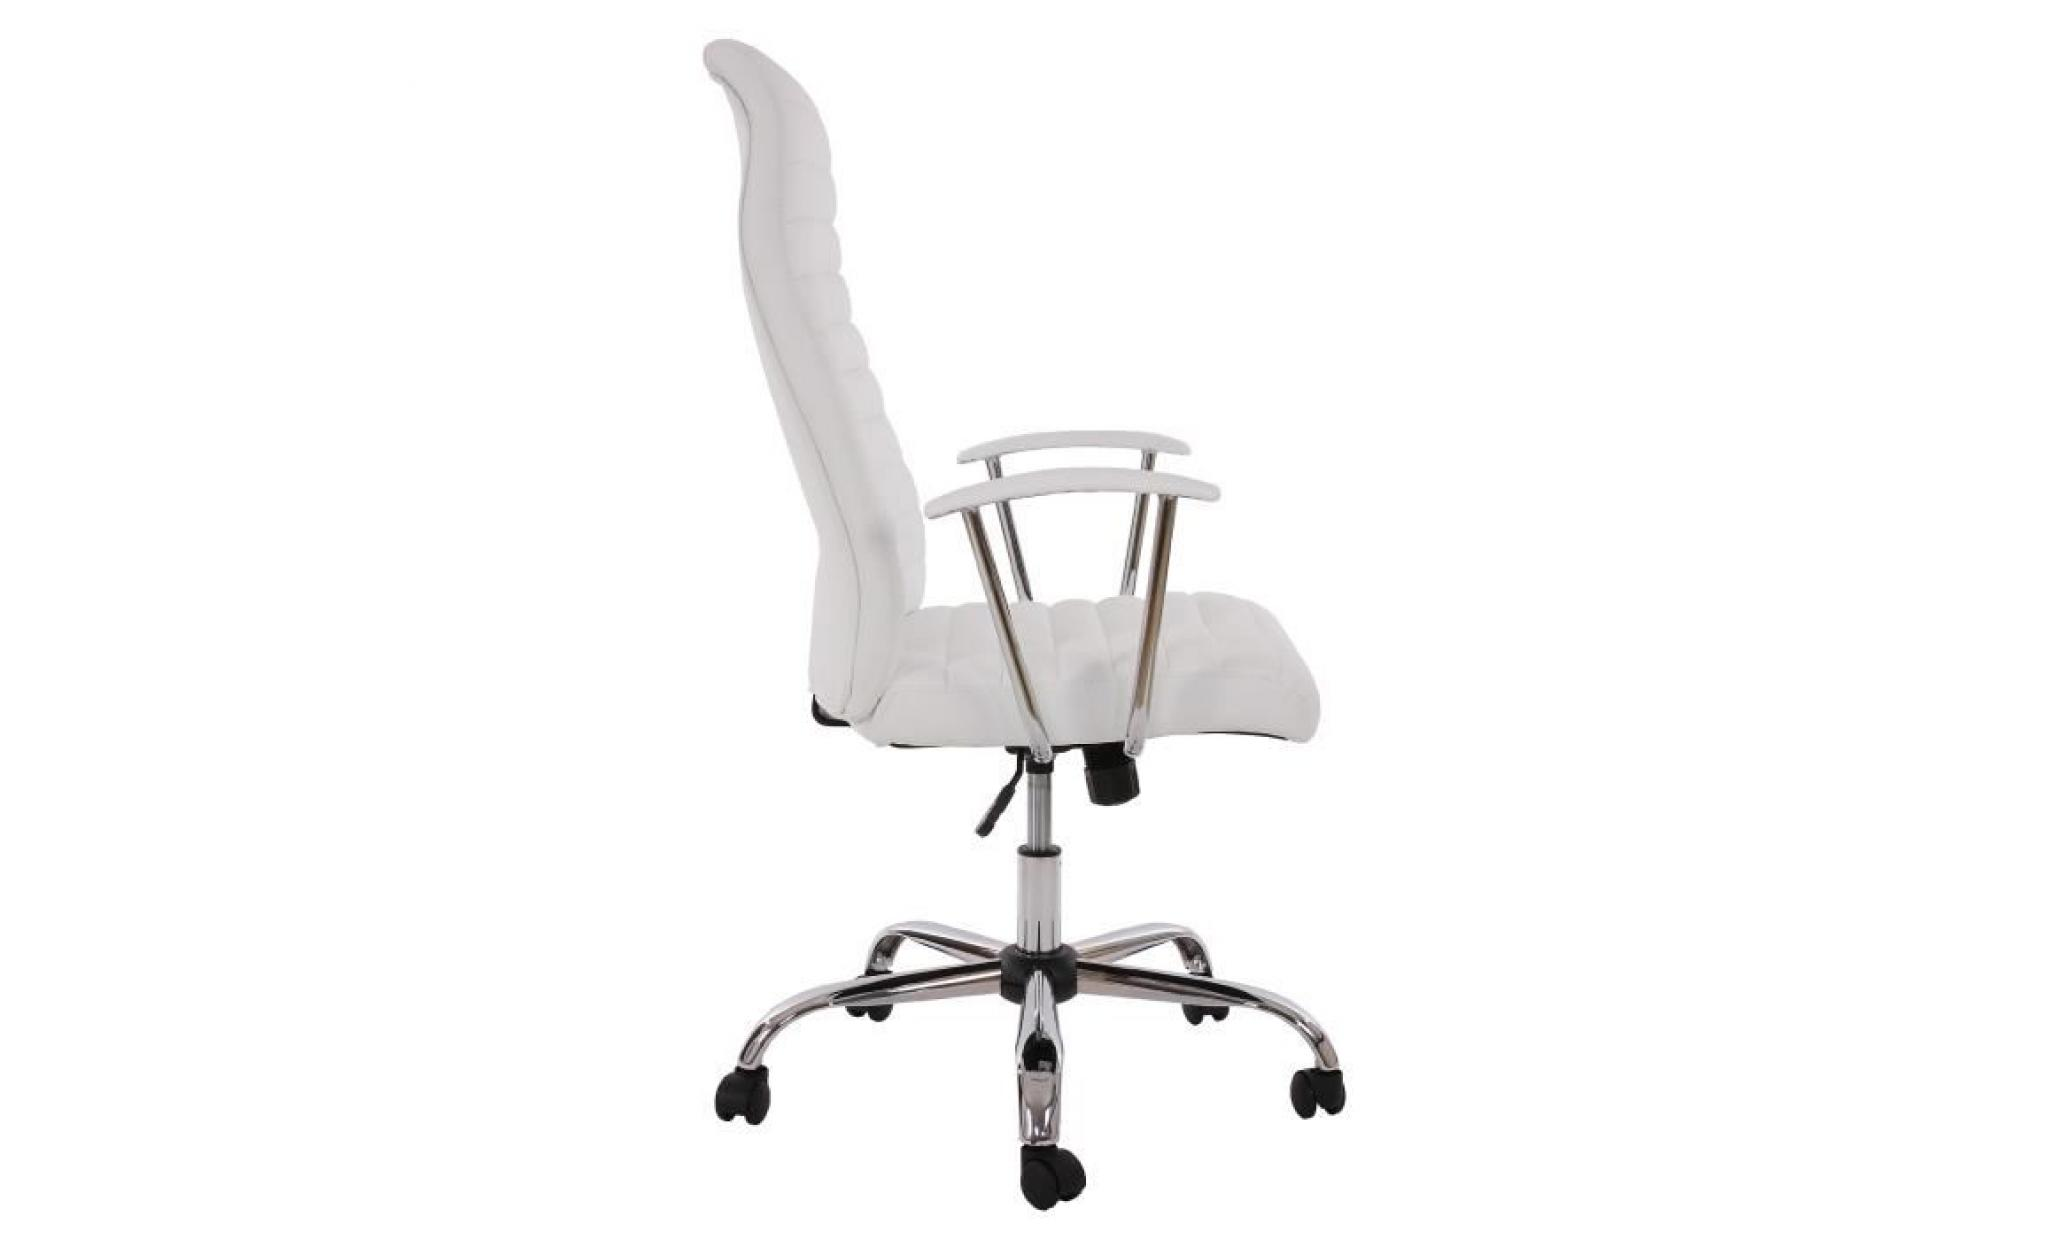 fauteuil chaise de bureau cagliari ergonomique pu blanc achat vente fauteuil de bureau pas. Black Bedroom Furniture Sets. Home Design Ideas